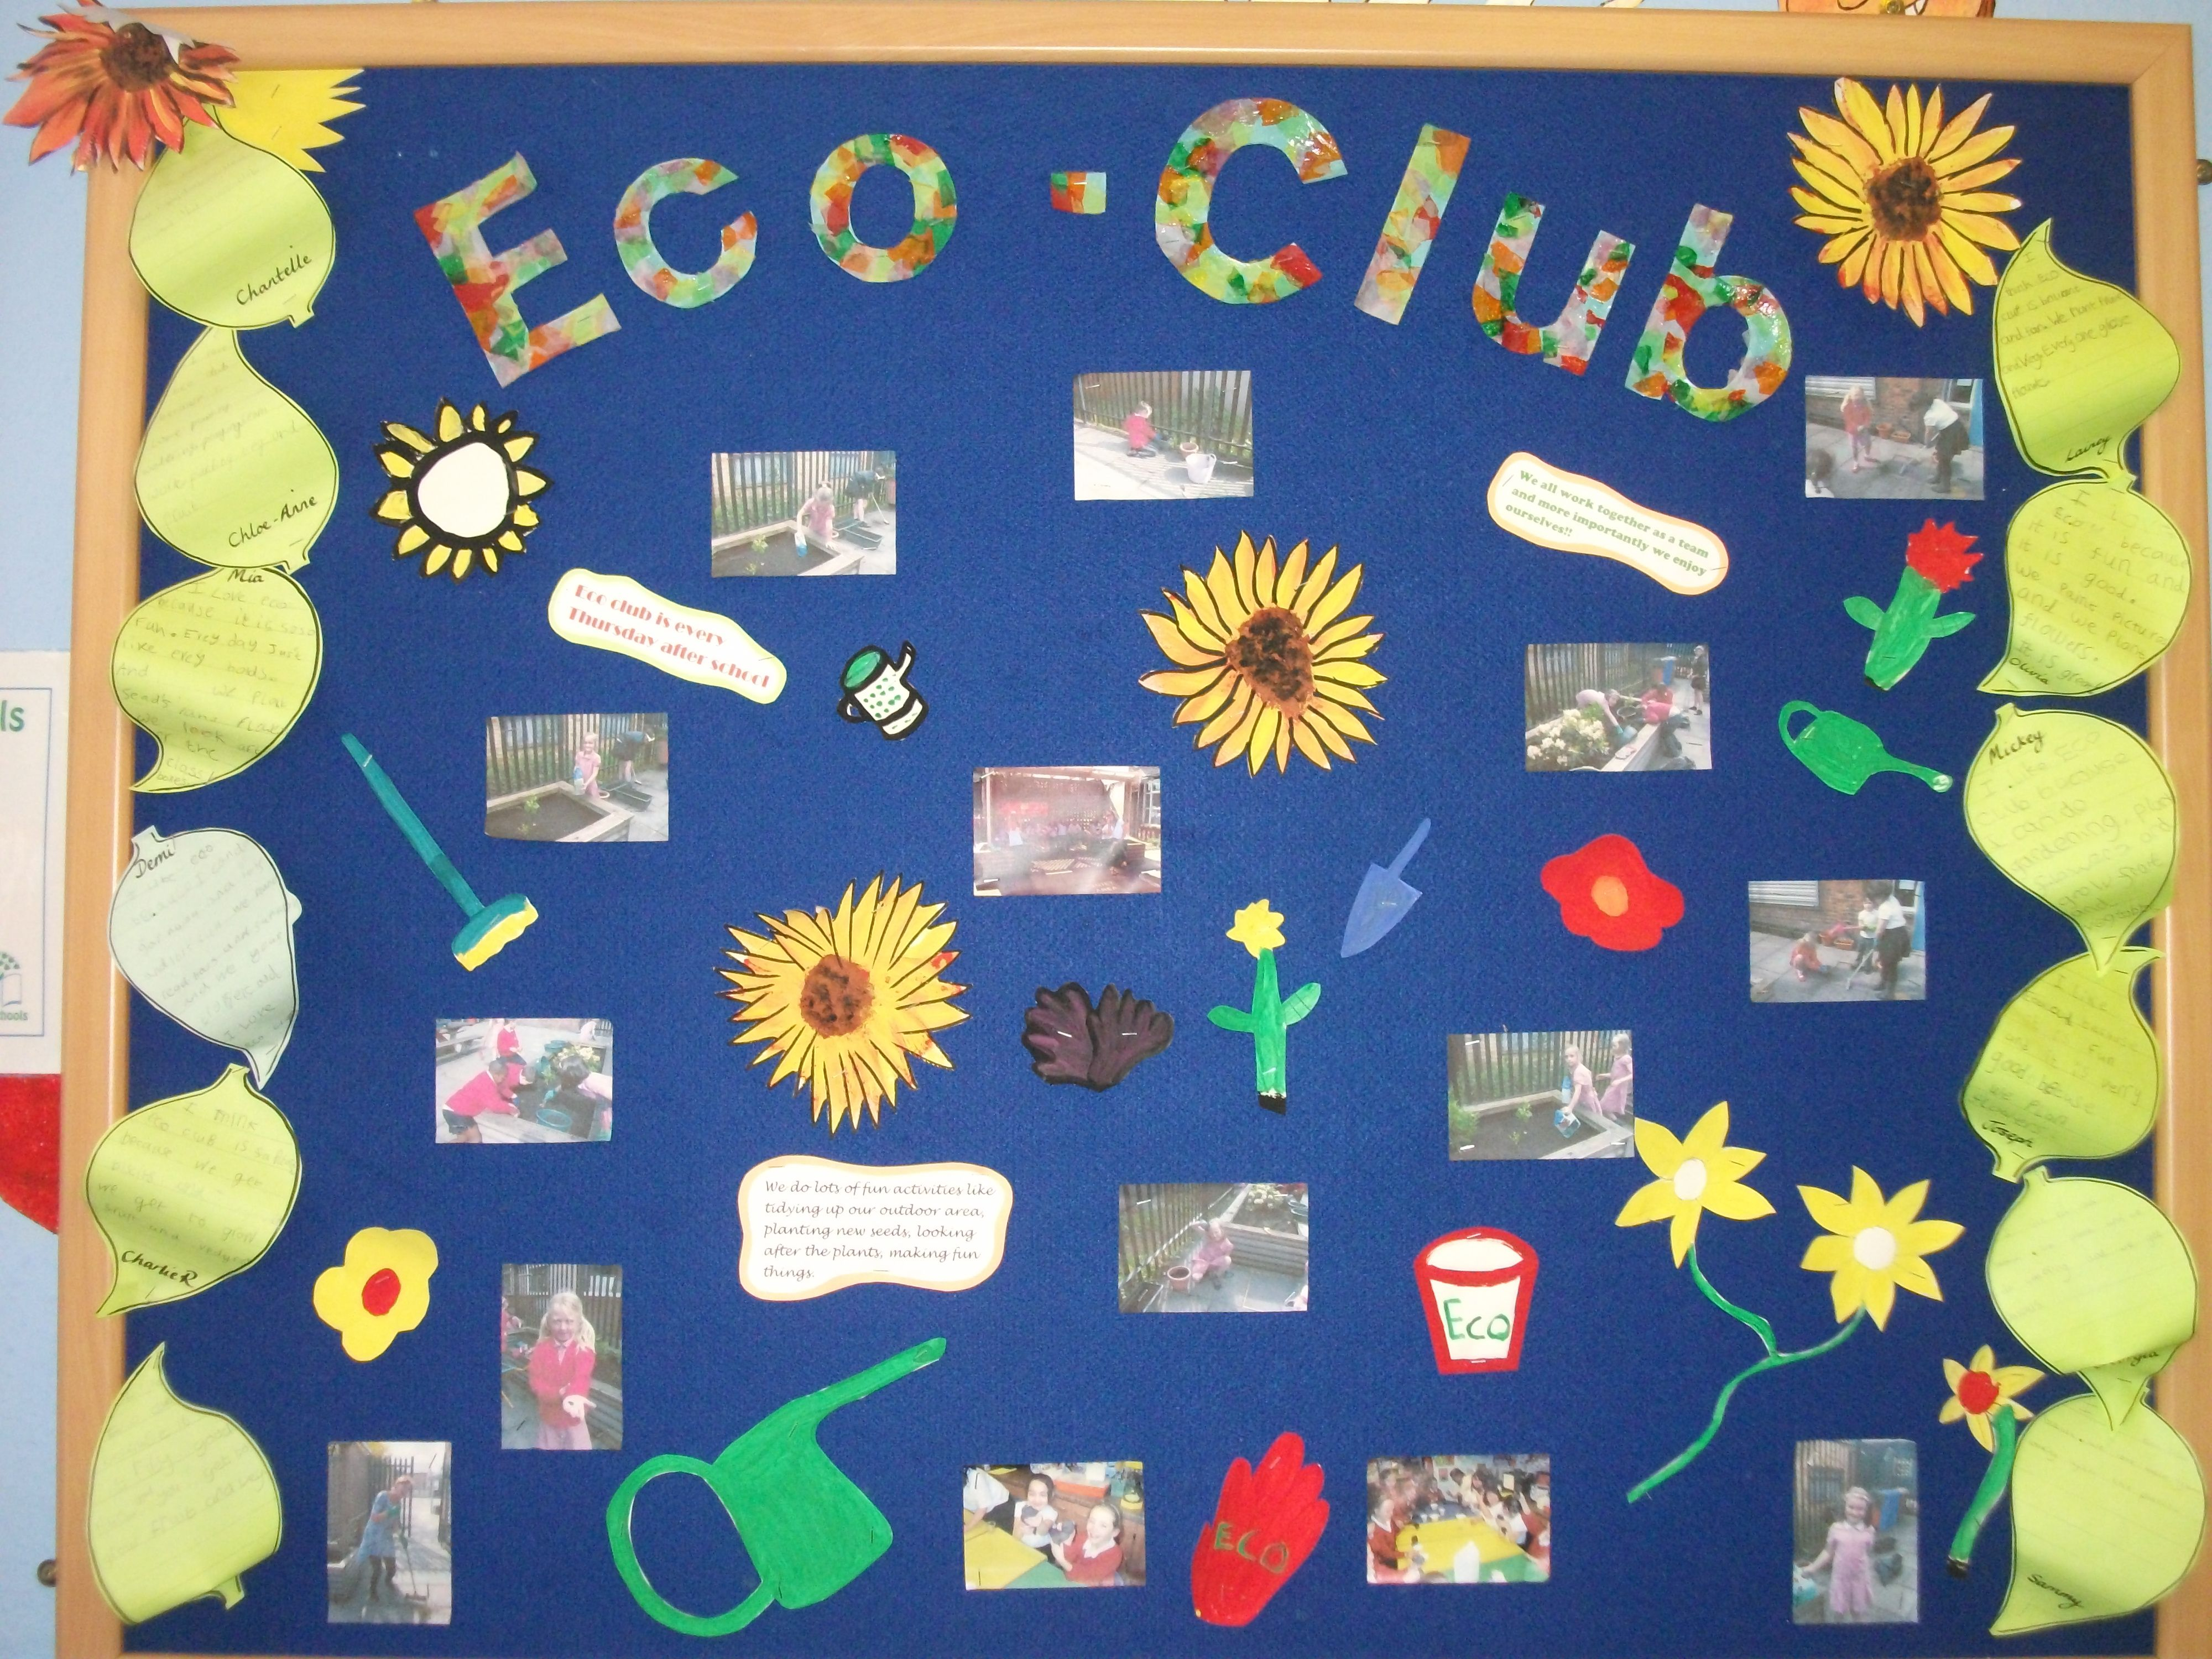 A Beautiful Idea From Christ Church School Using Our